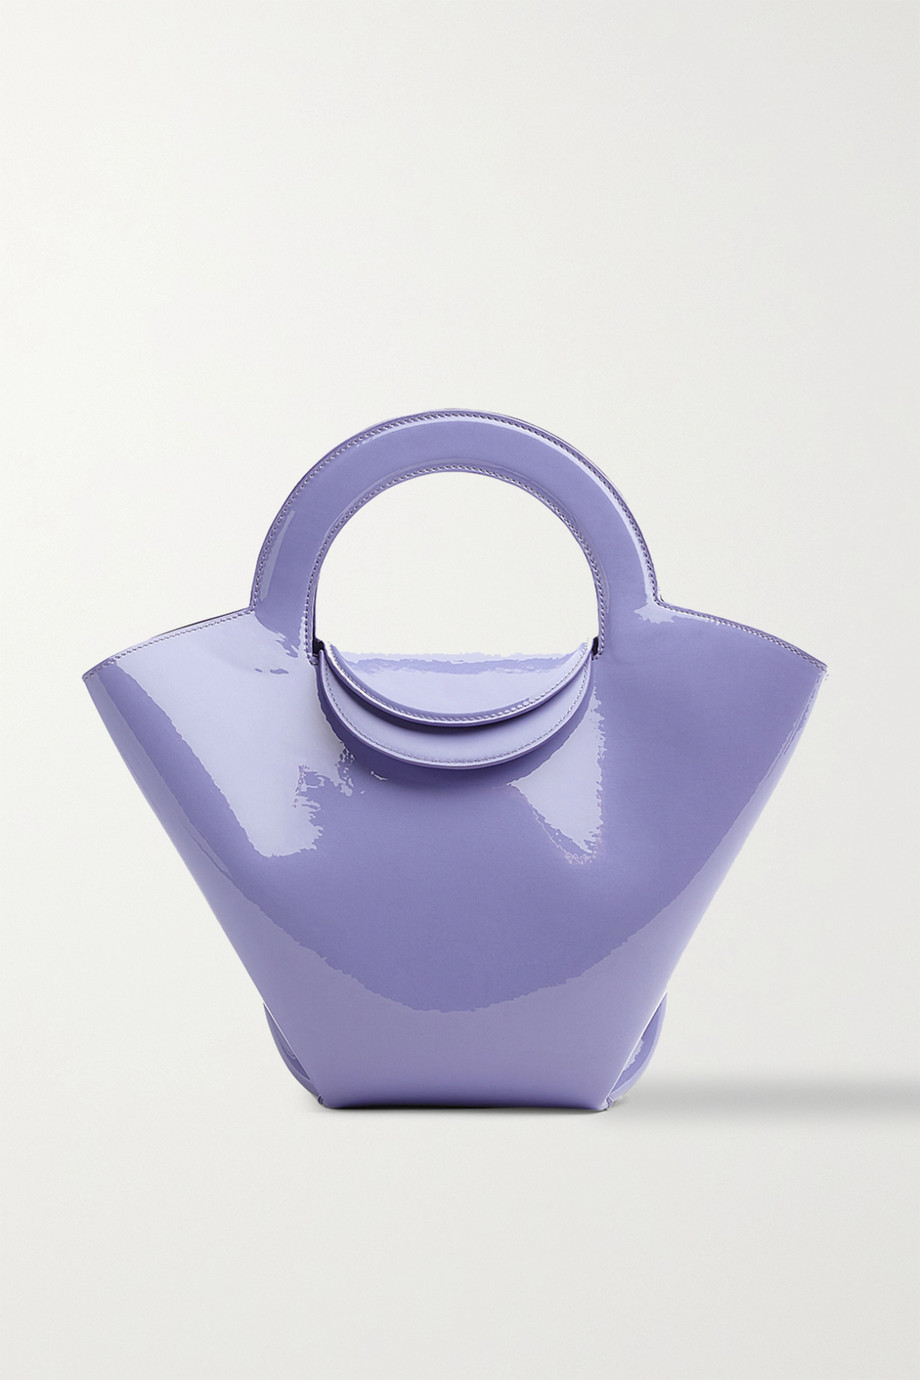 Bottega Veneta Sac à main en cuir verni Doll Small